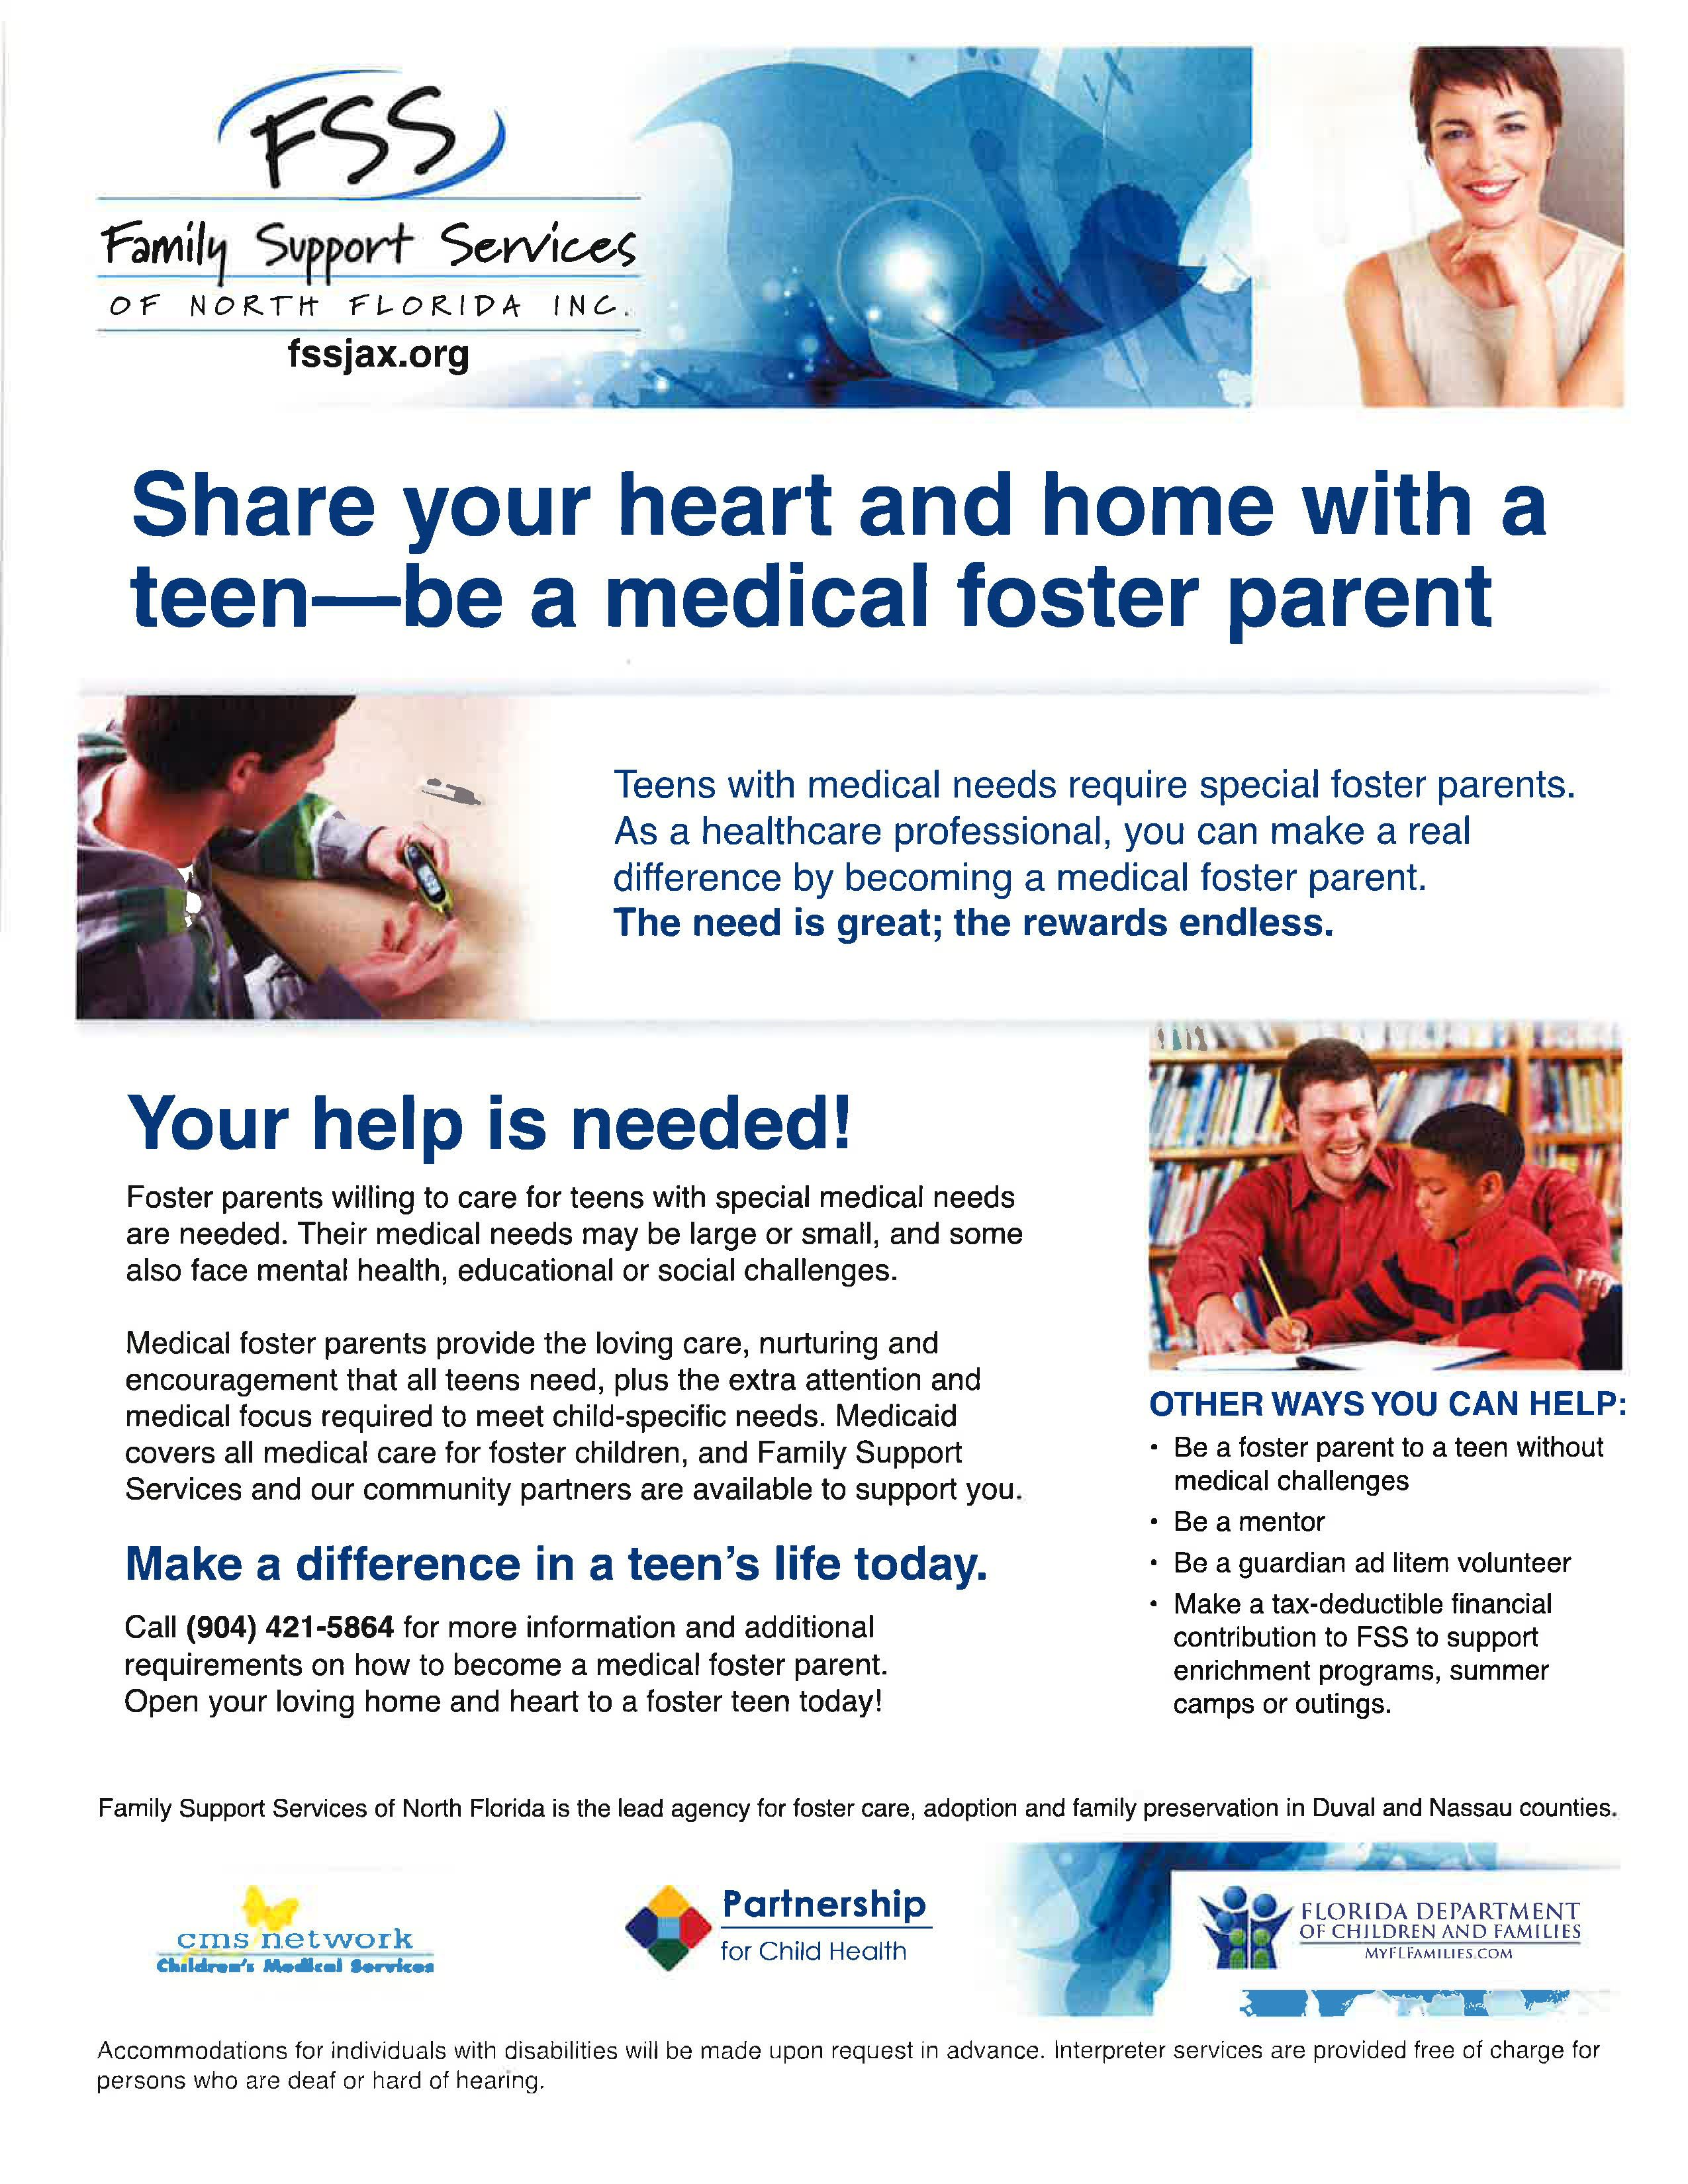 Medical Foster Homes | Foster parenting, Parenting teens ...